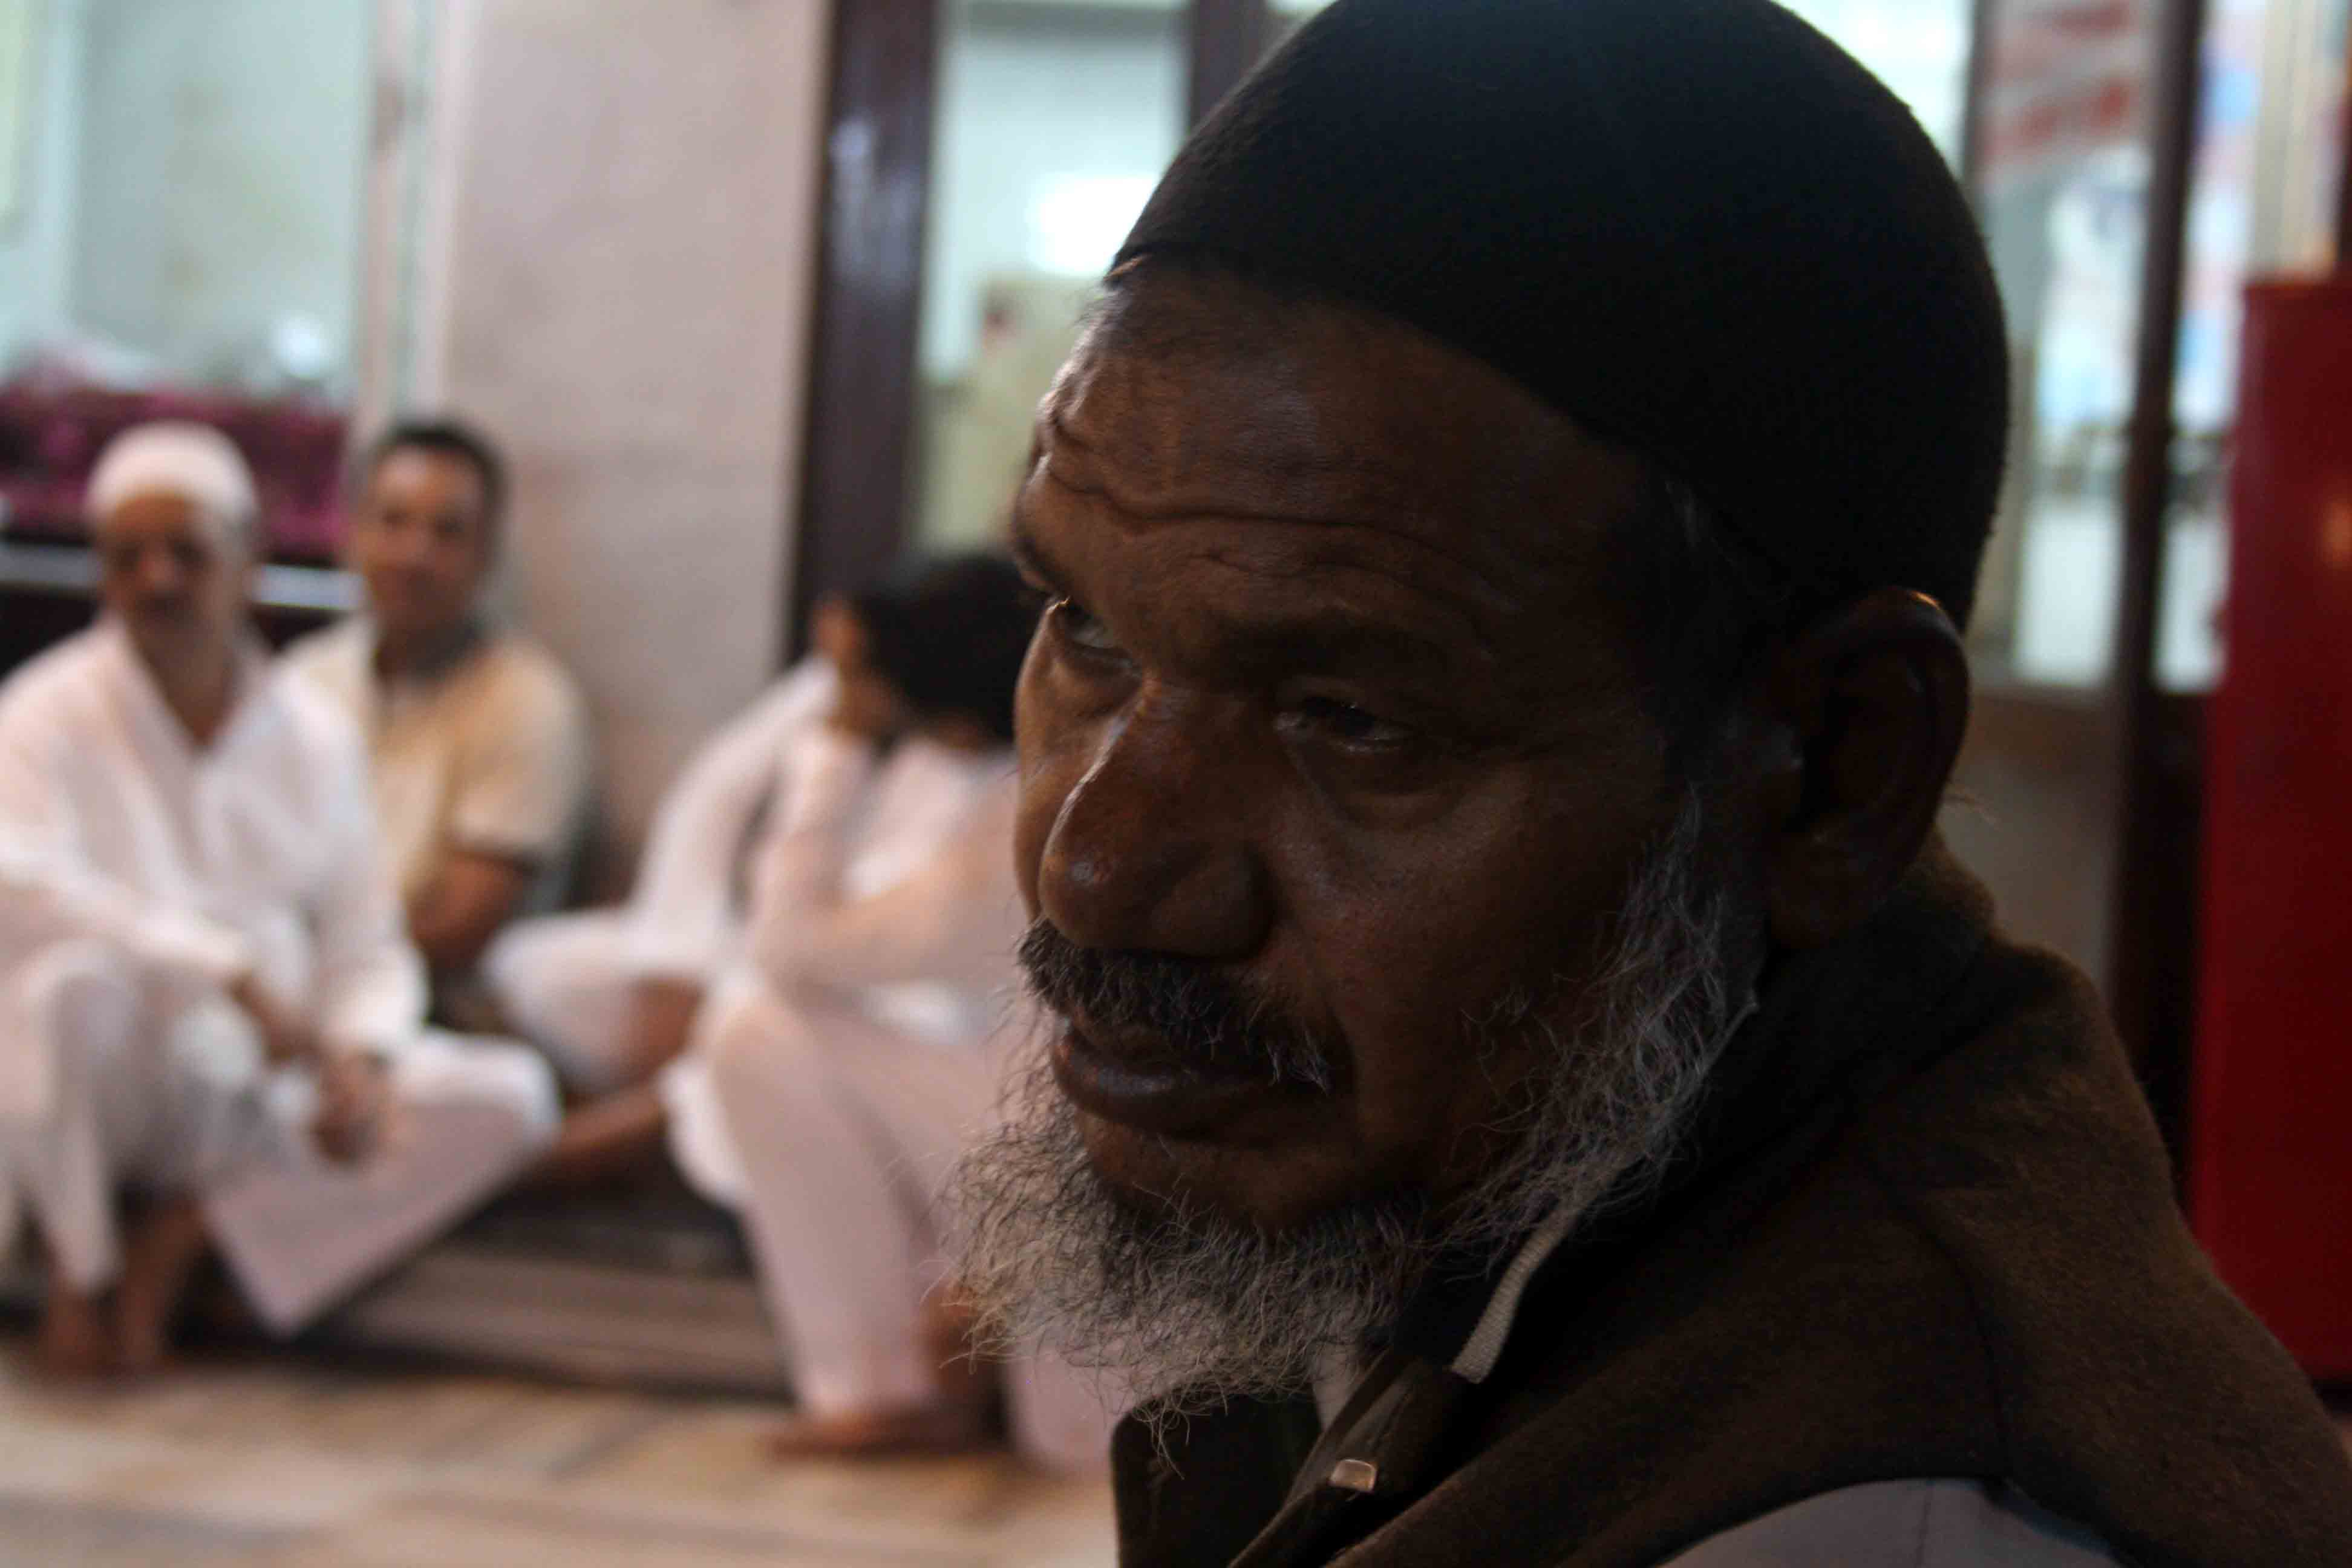 City Faith - Agha Shahid Ali's Poetry, Hazrat Nizamuddin Dargah